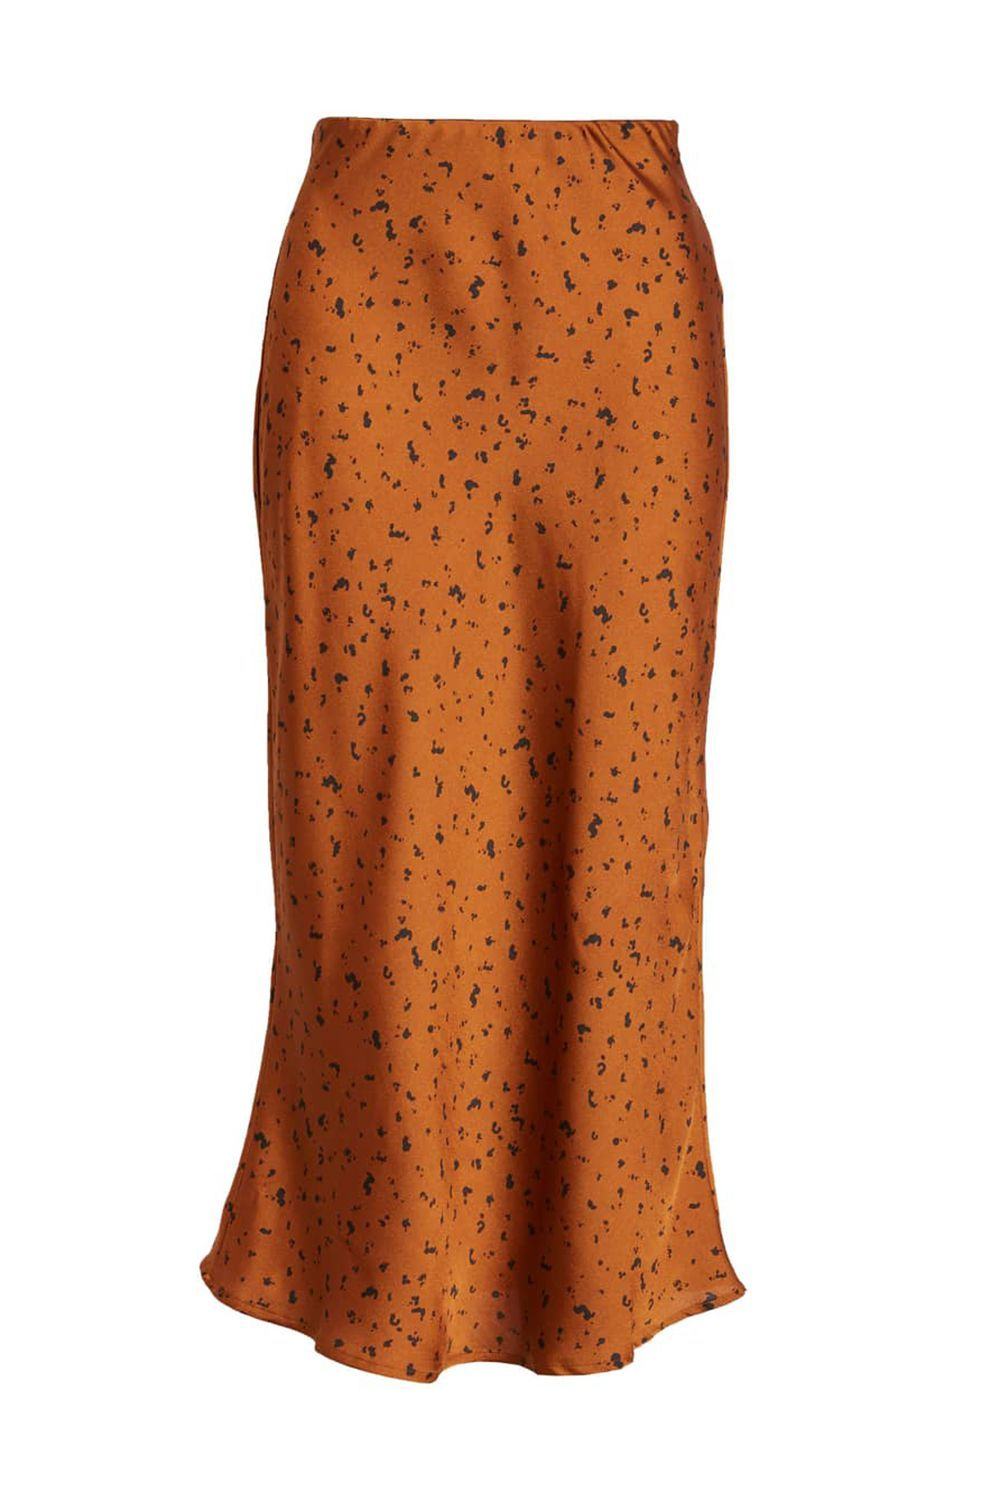 An Animal Print-Inspired Skirt J.O.A. nordstrom.com $74.00 SHOP IT You're still working your way up to feeling comfortable in a full-on leopard or zebra skirt. Same.